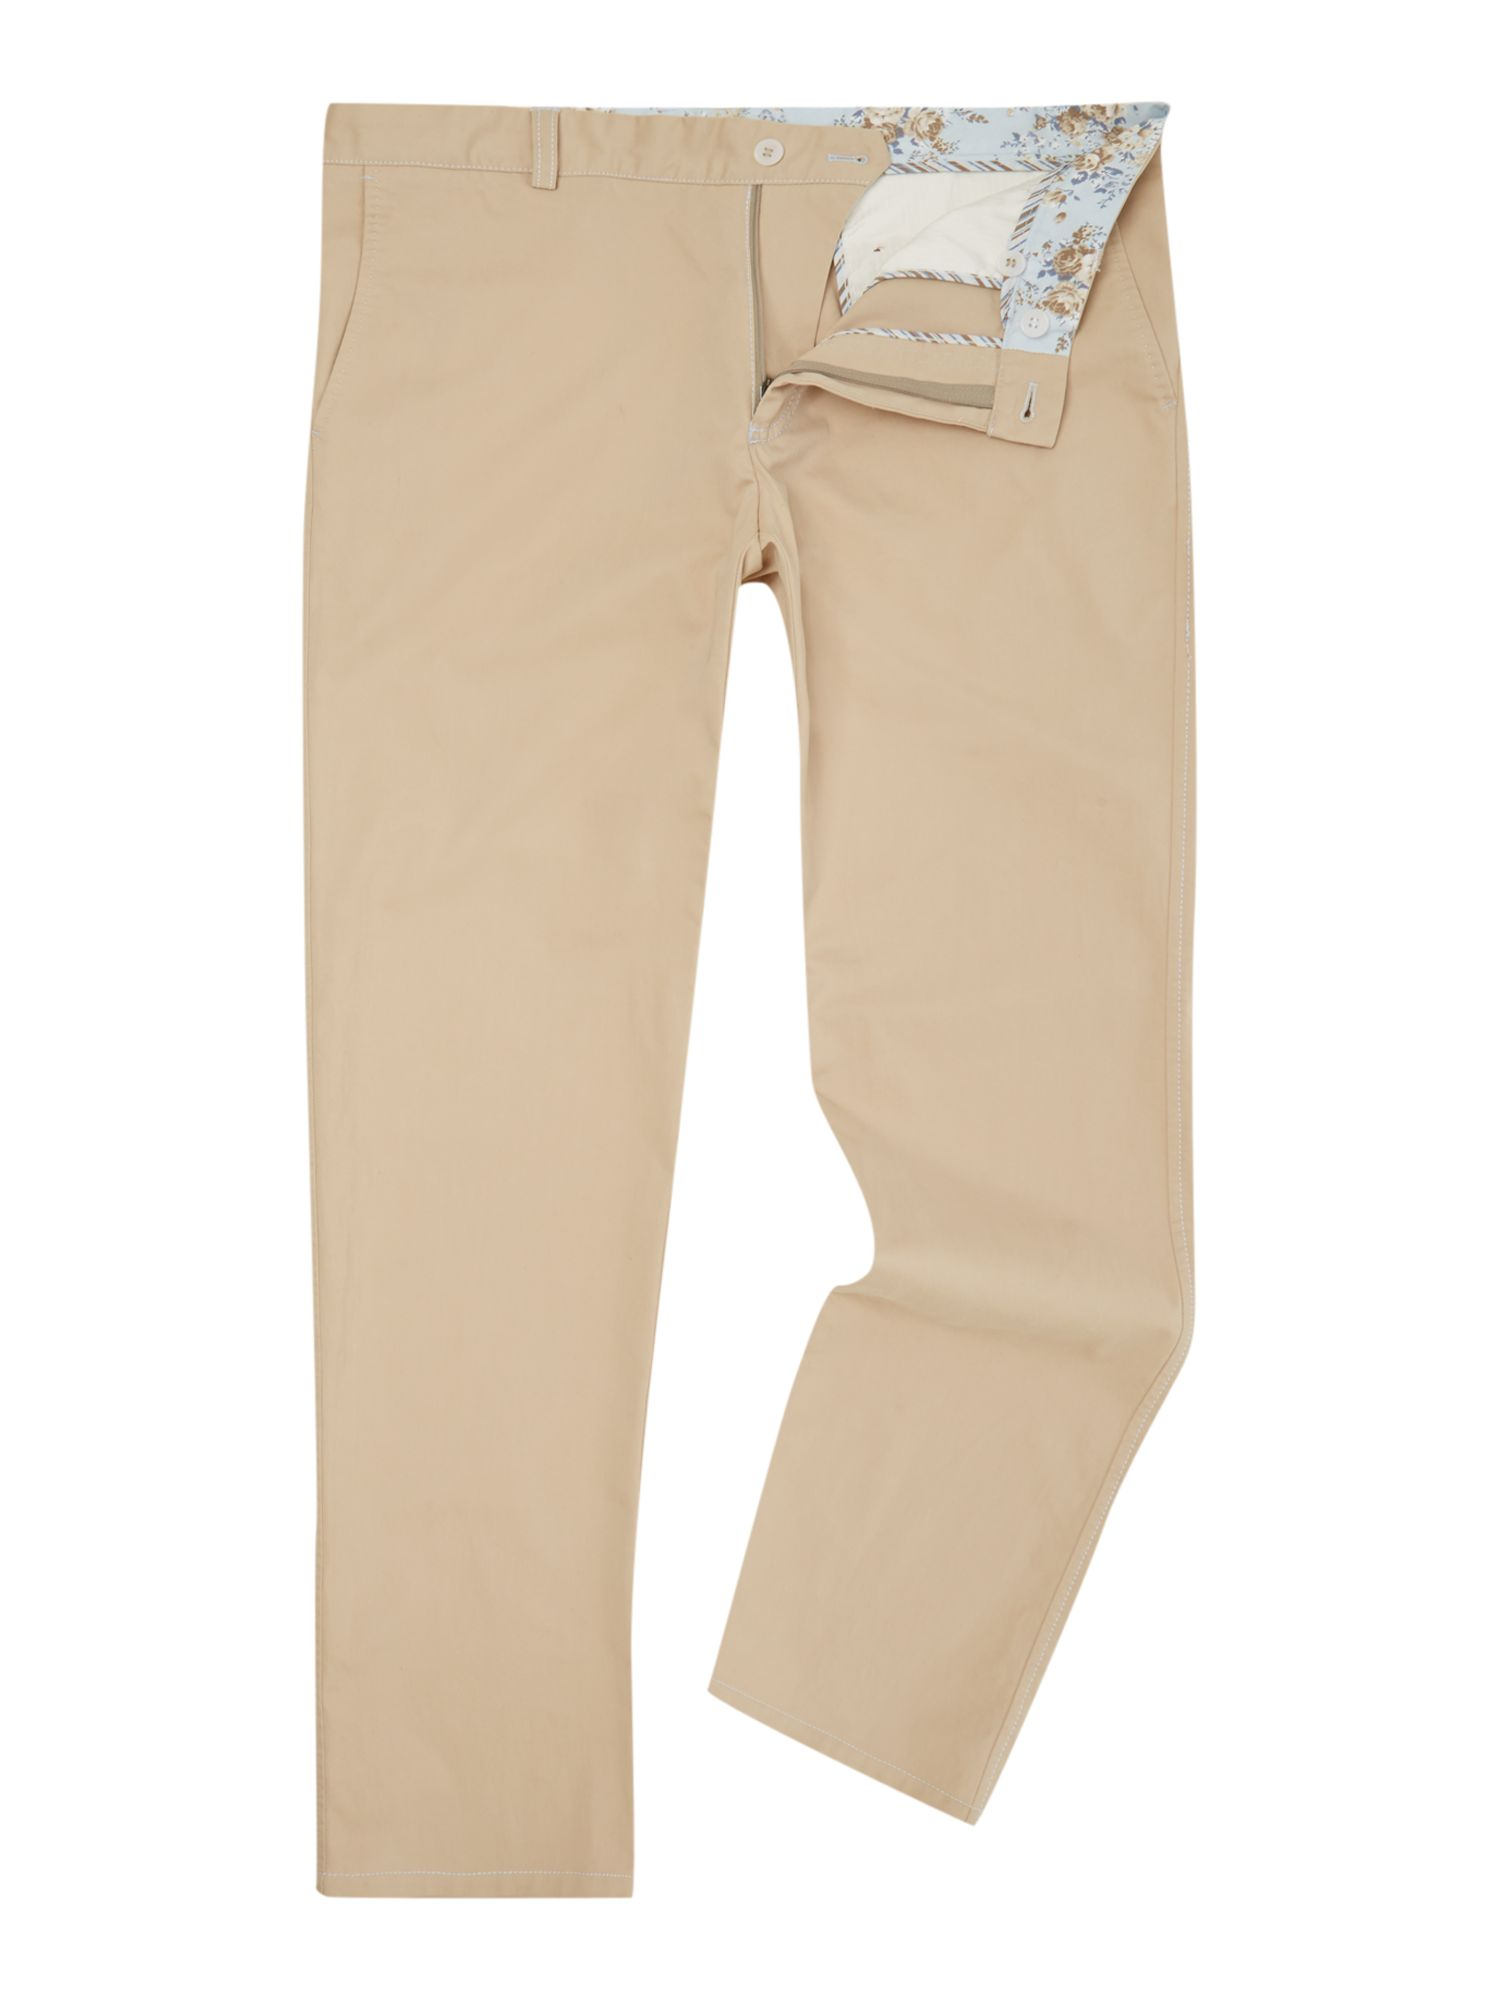 Magee Men's Magee Straight Leg Tailored Trousers, Cream